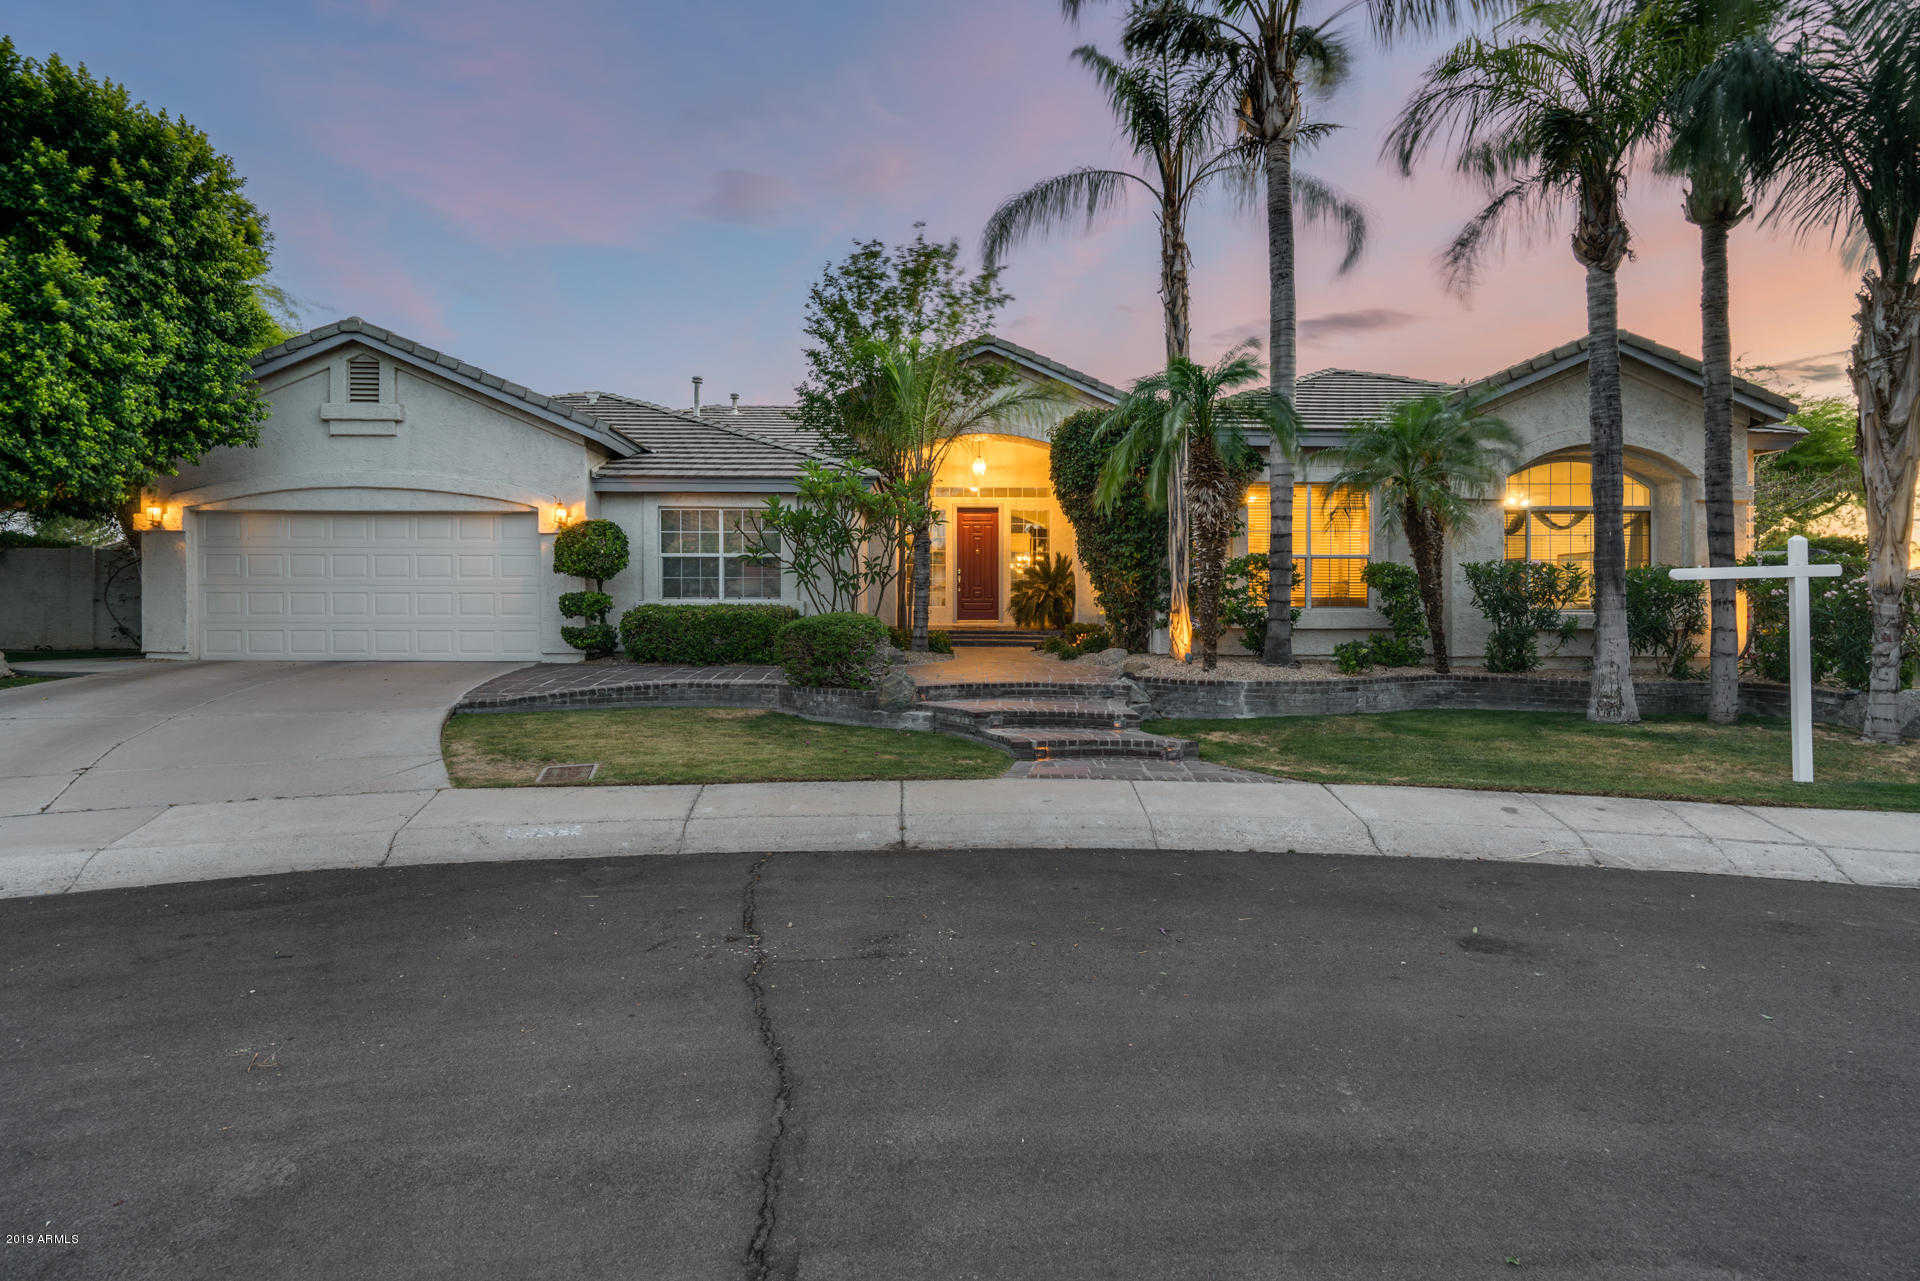 $699,000 - 3Br/3Ba - Home for Sale in Arrowhead Lakes, Glendale